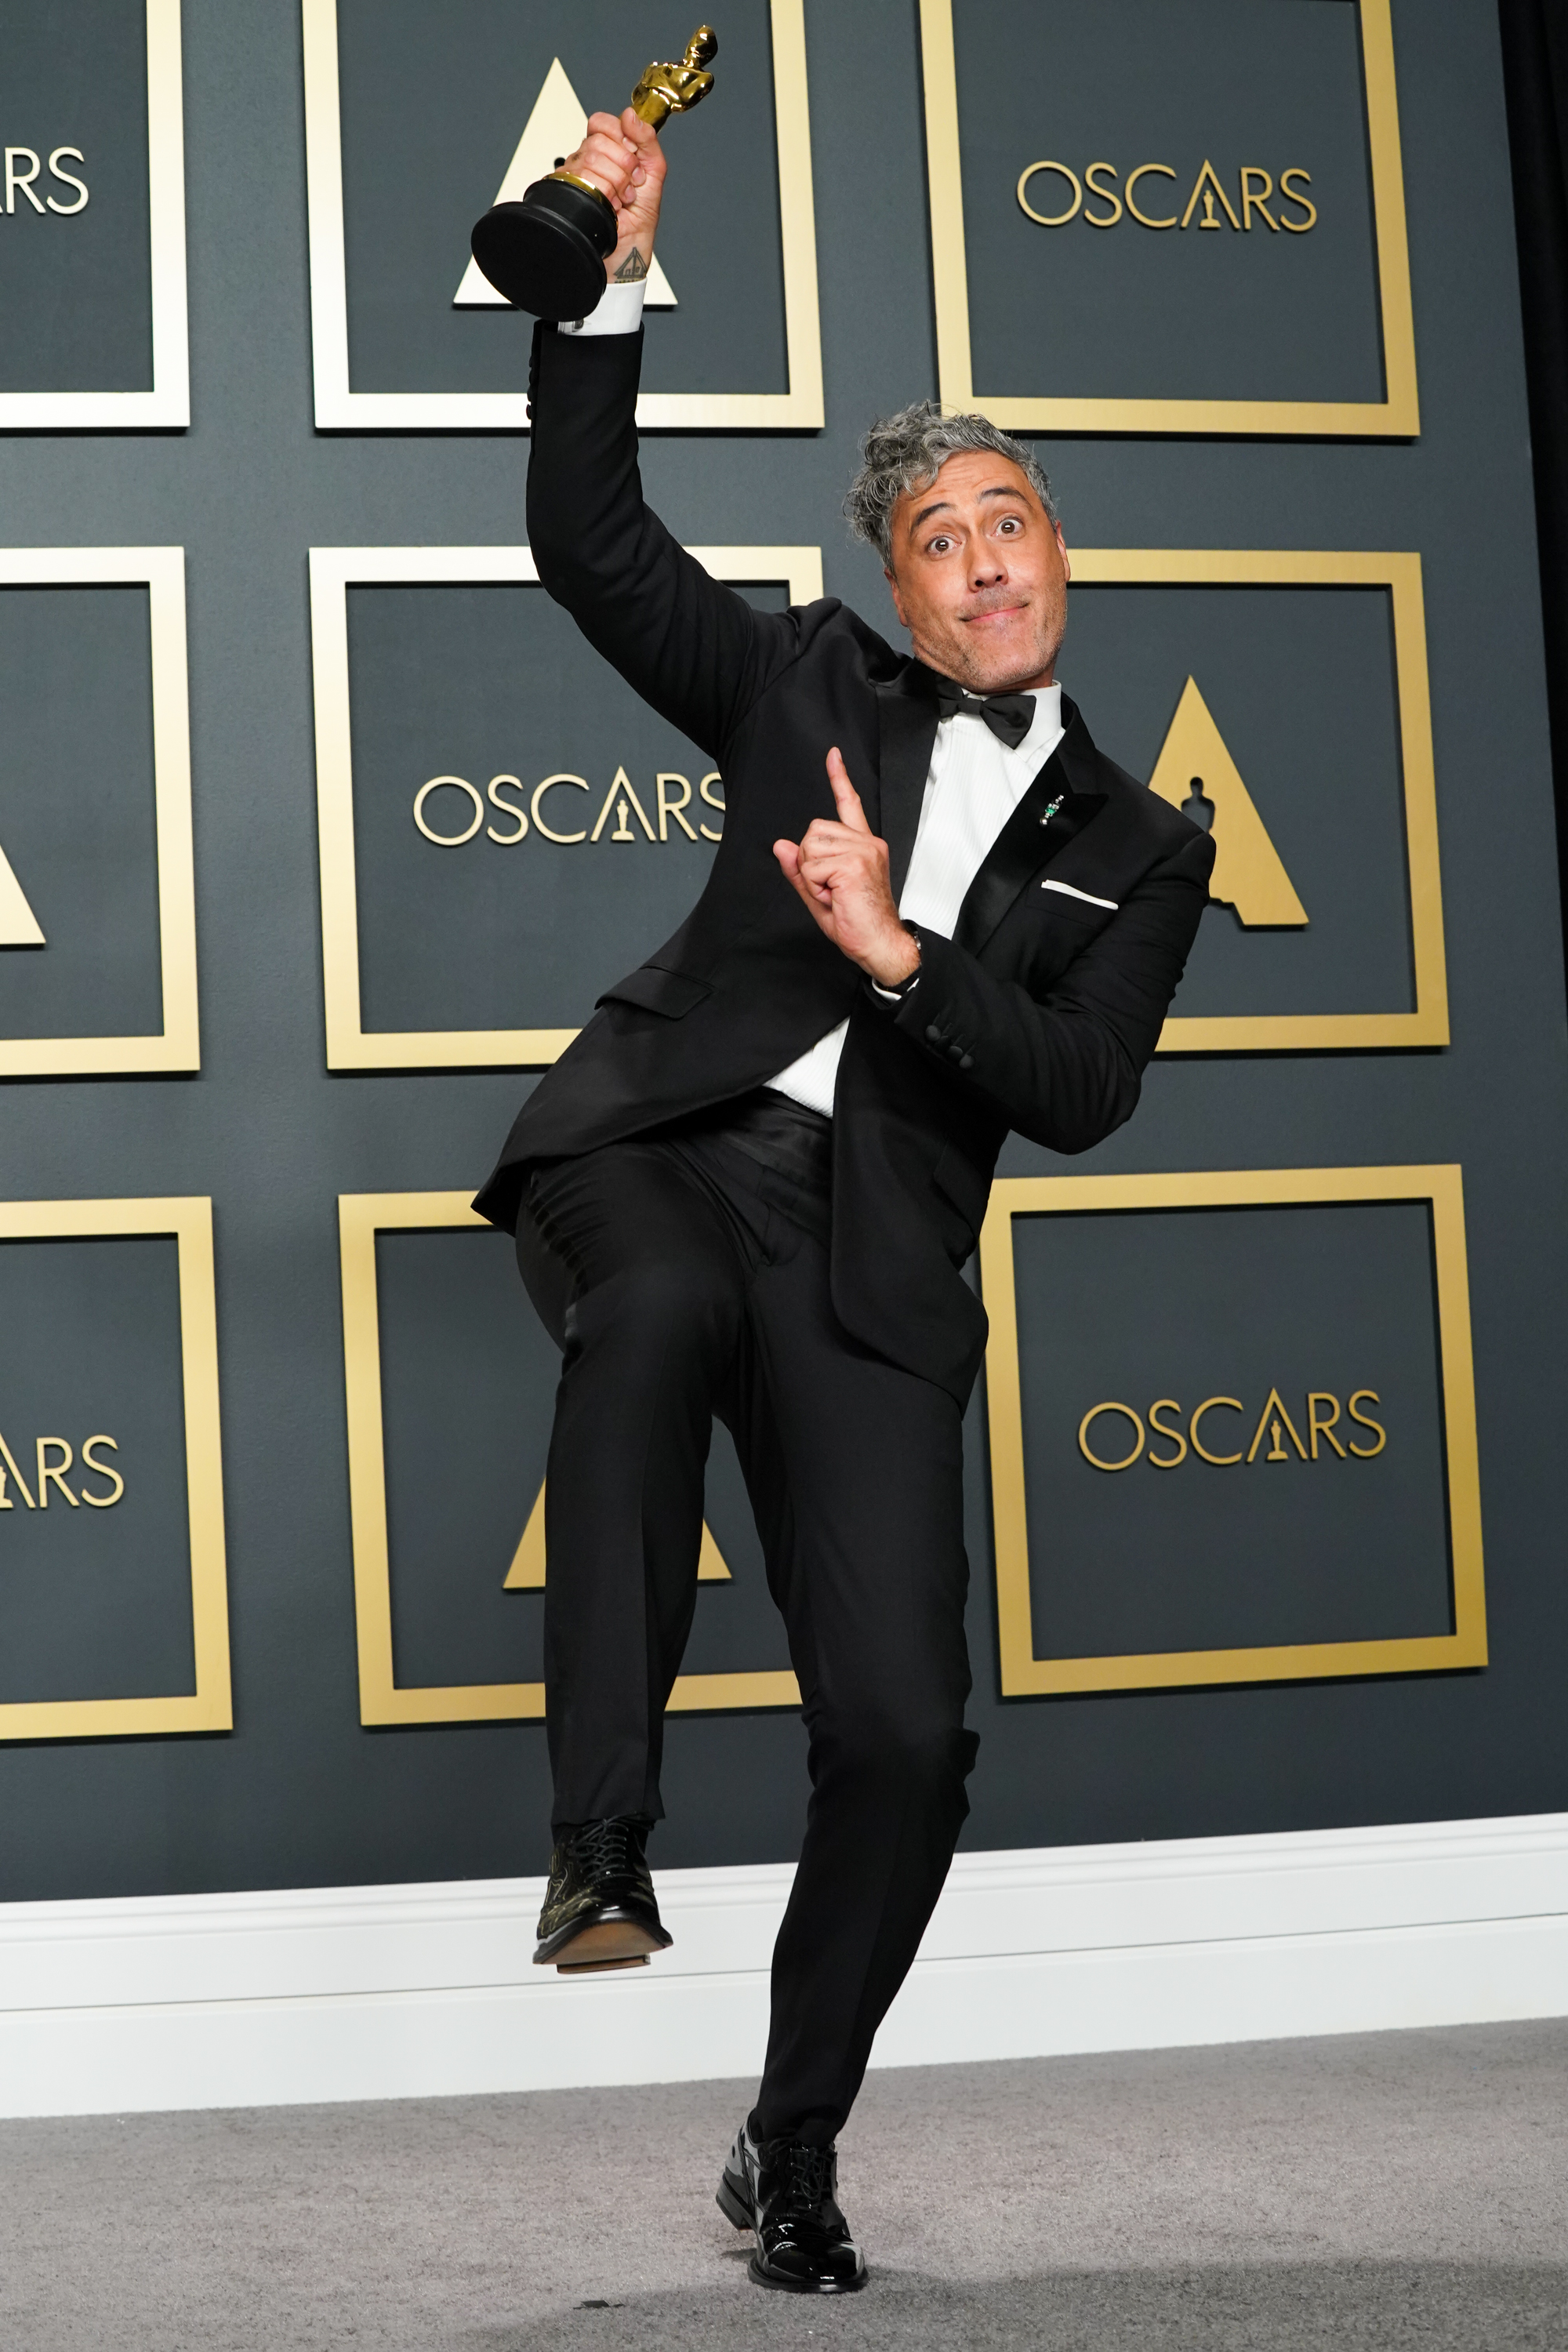 """Taika Waititi, winner of Best Adapted Screenplay for """"Jojo Rabbit,"""" poses in the press room during the 92nd Annual Academy Awards at Hollywood and Highland on February 09, 2020 in Hollywood, California. (Photo by Rachel Luna/Getty Images)"""